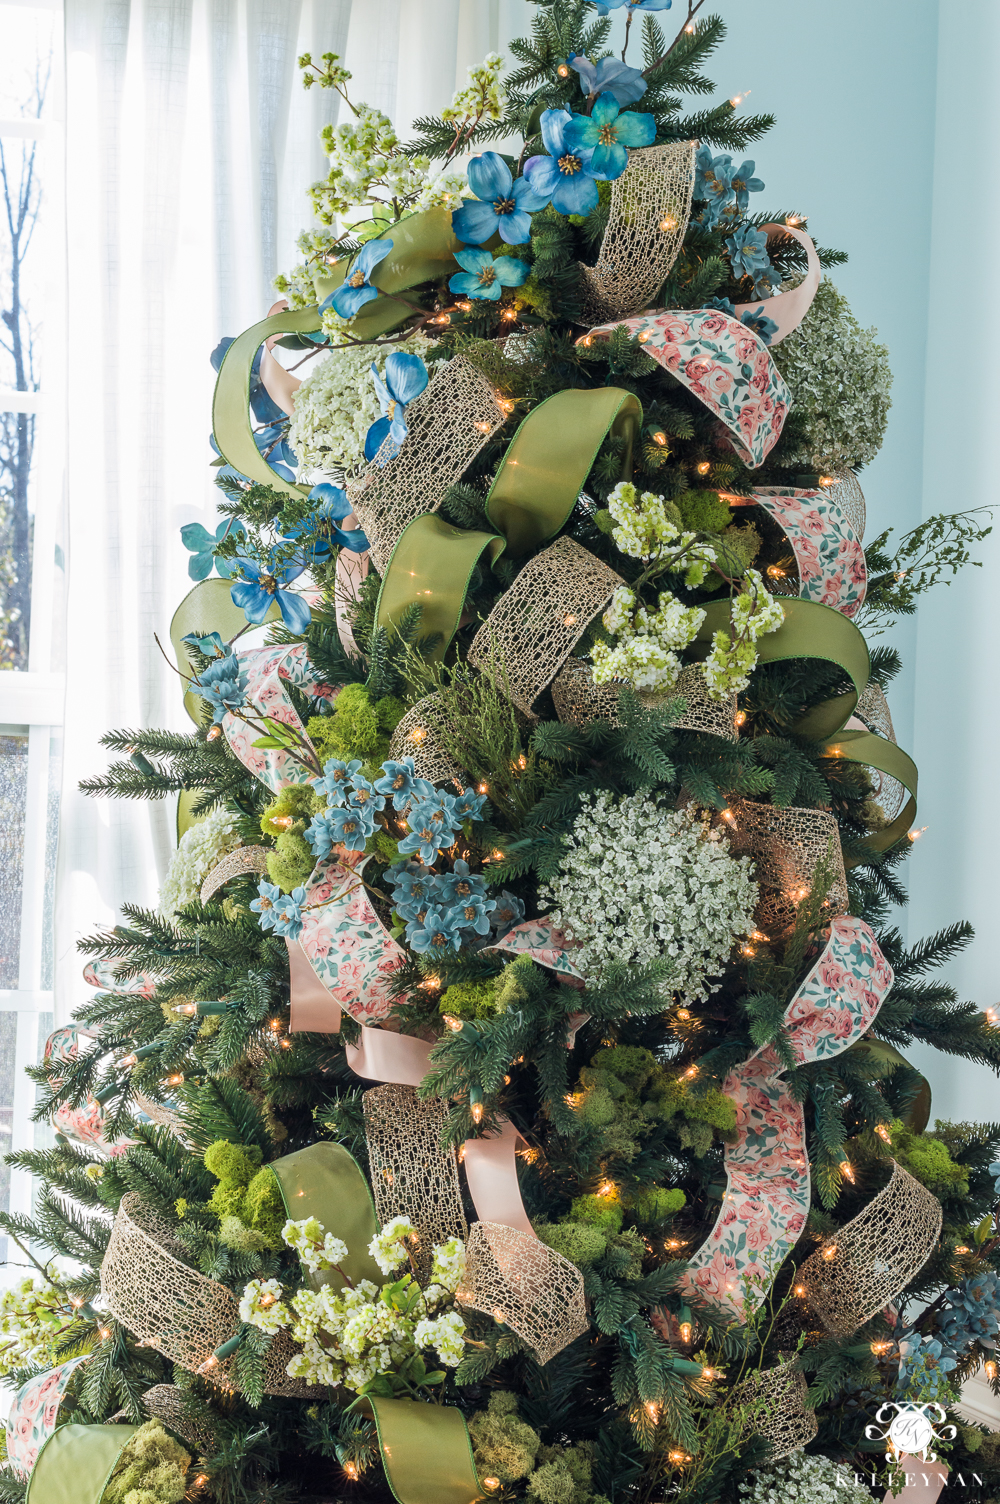 Before you wrap your gifts and hang your stockings from the mantel with care, you have to trim the tree, preferably with piles and piles of gorgeous ribbon. Here are a few of our favorite ideas for putting ribbon on your Christmas tree this year.